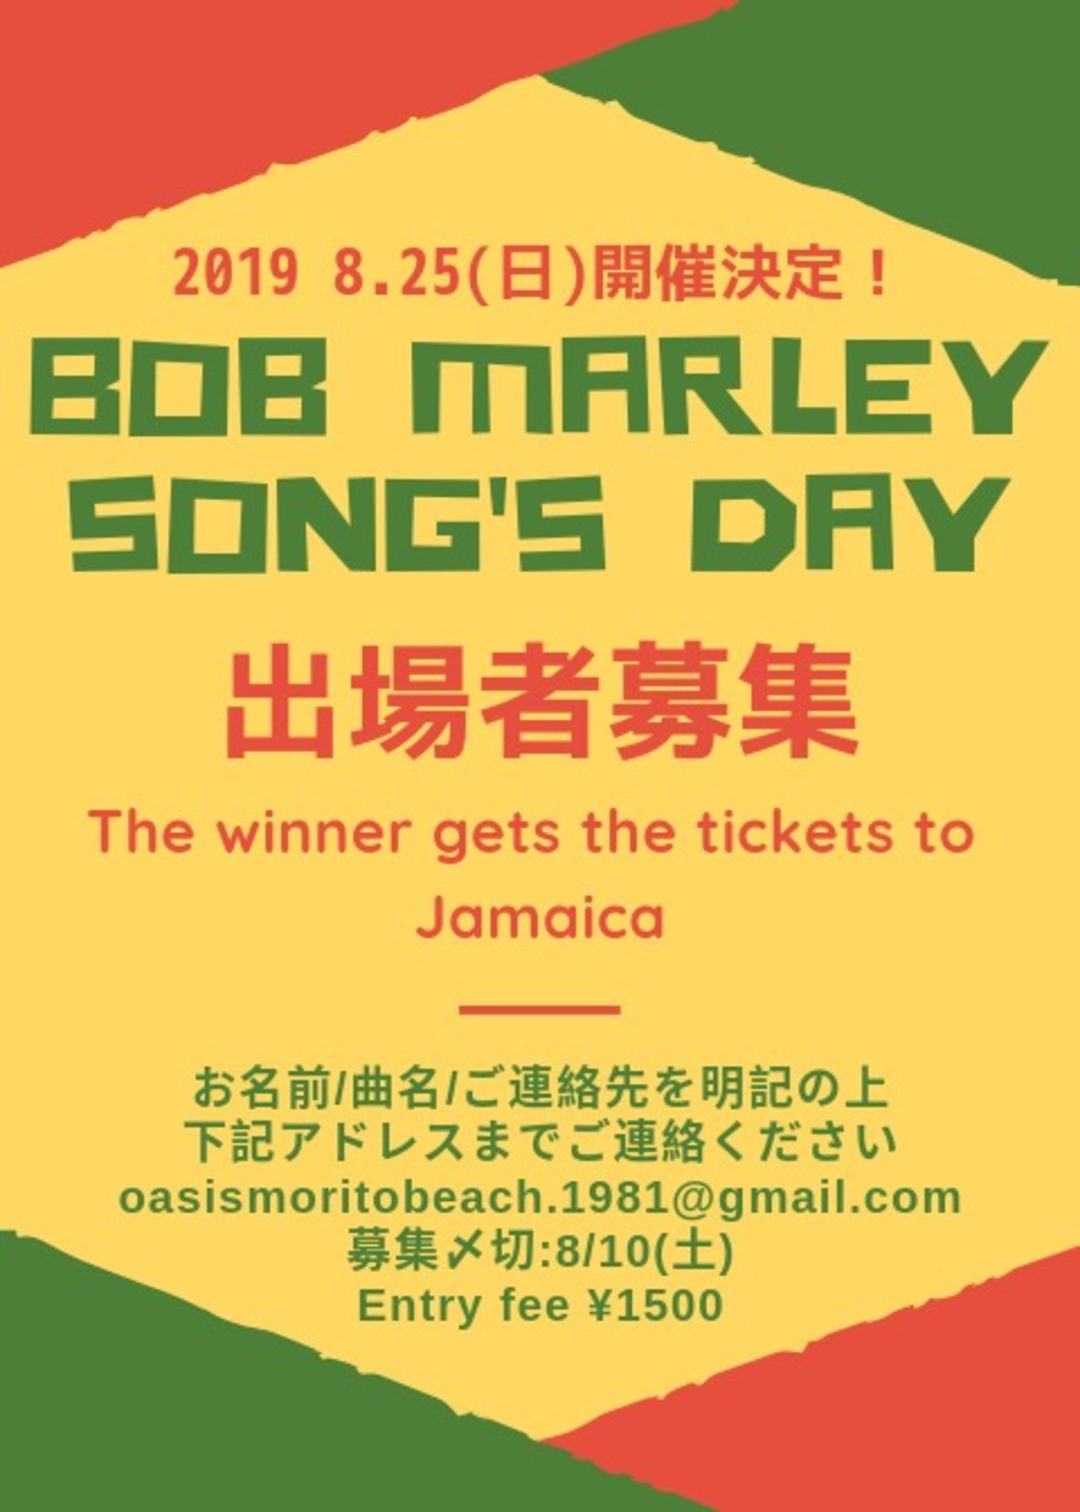 Bob Marley Song's Day 出場者募集!